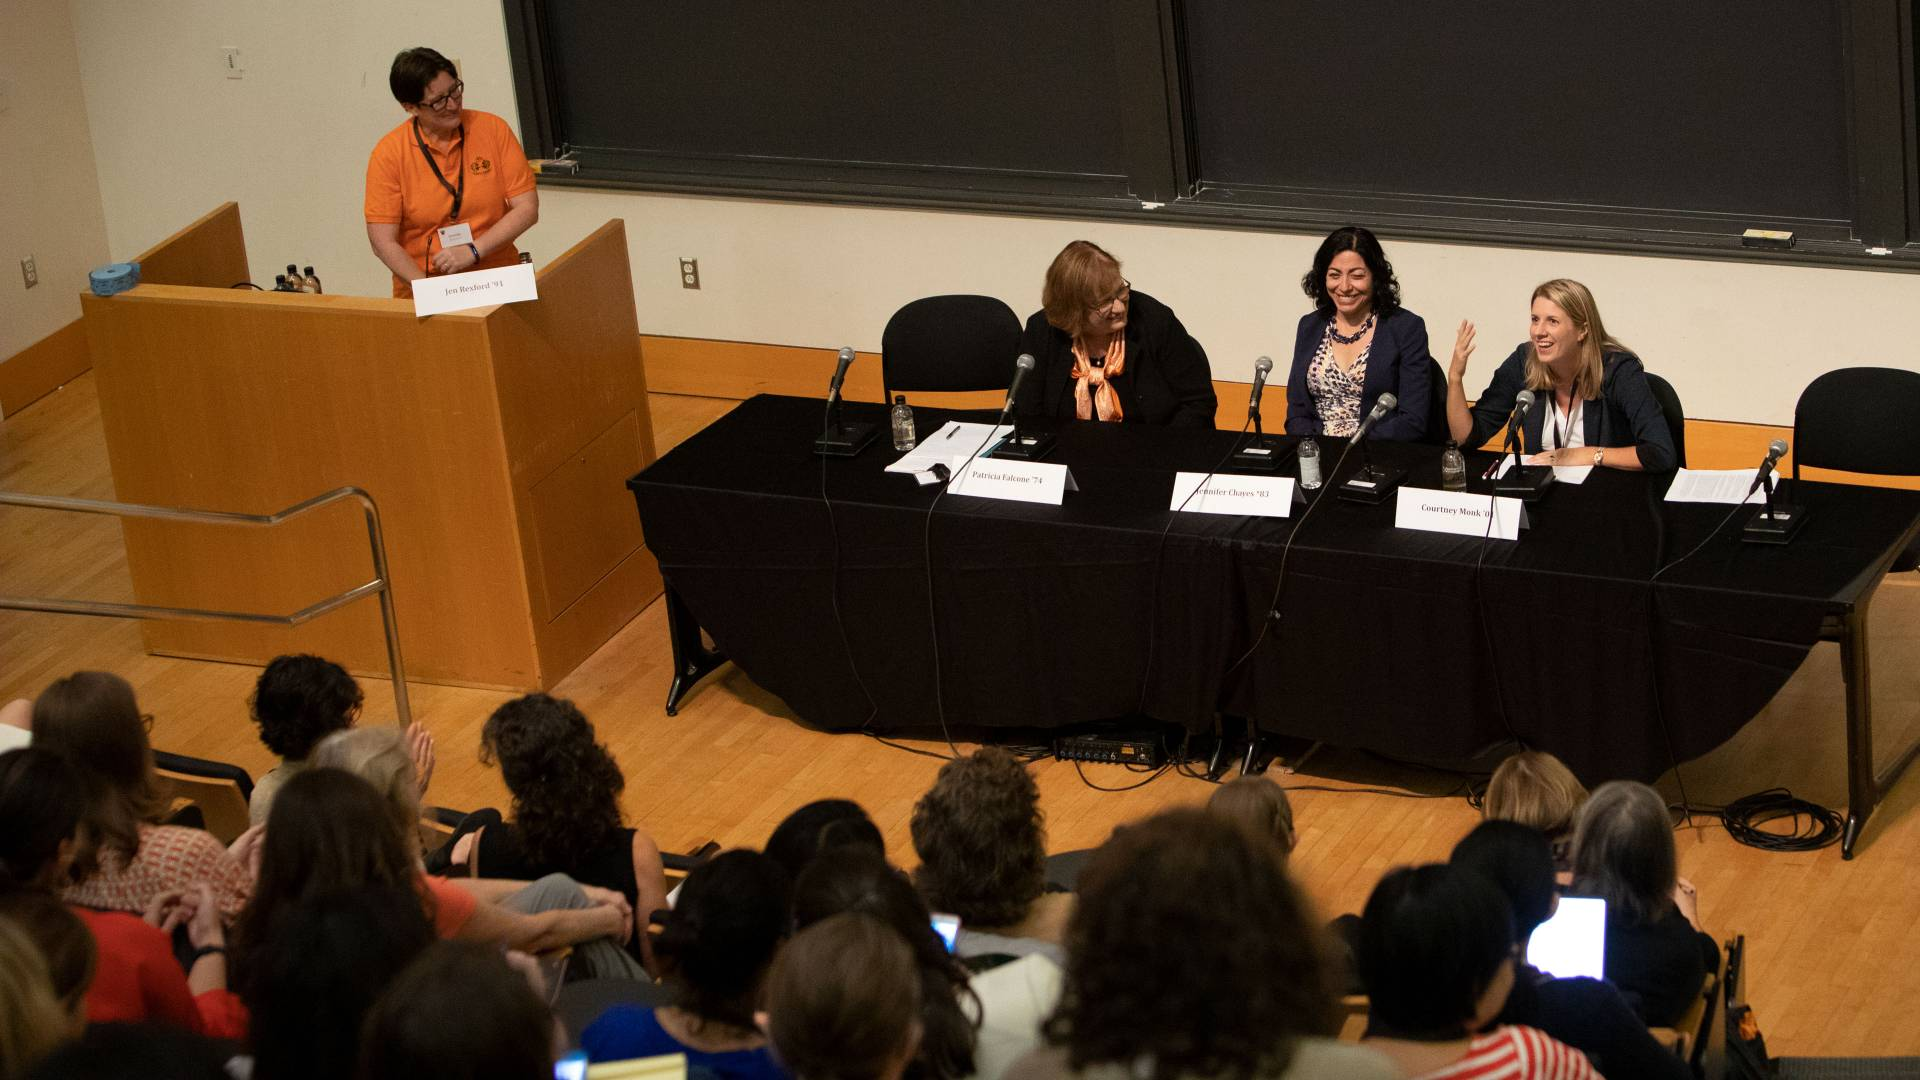 Jennifer Rexford '91 at podium; at table left to right:  Patricia Falcone '74, Jennifer Chayes *83, Courtney Monk '01